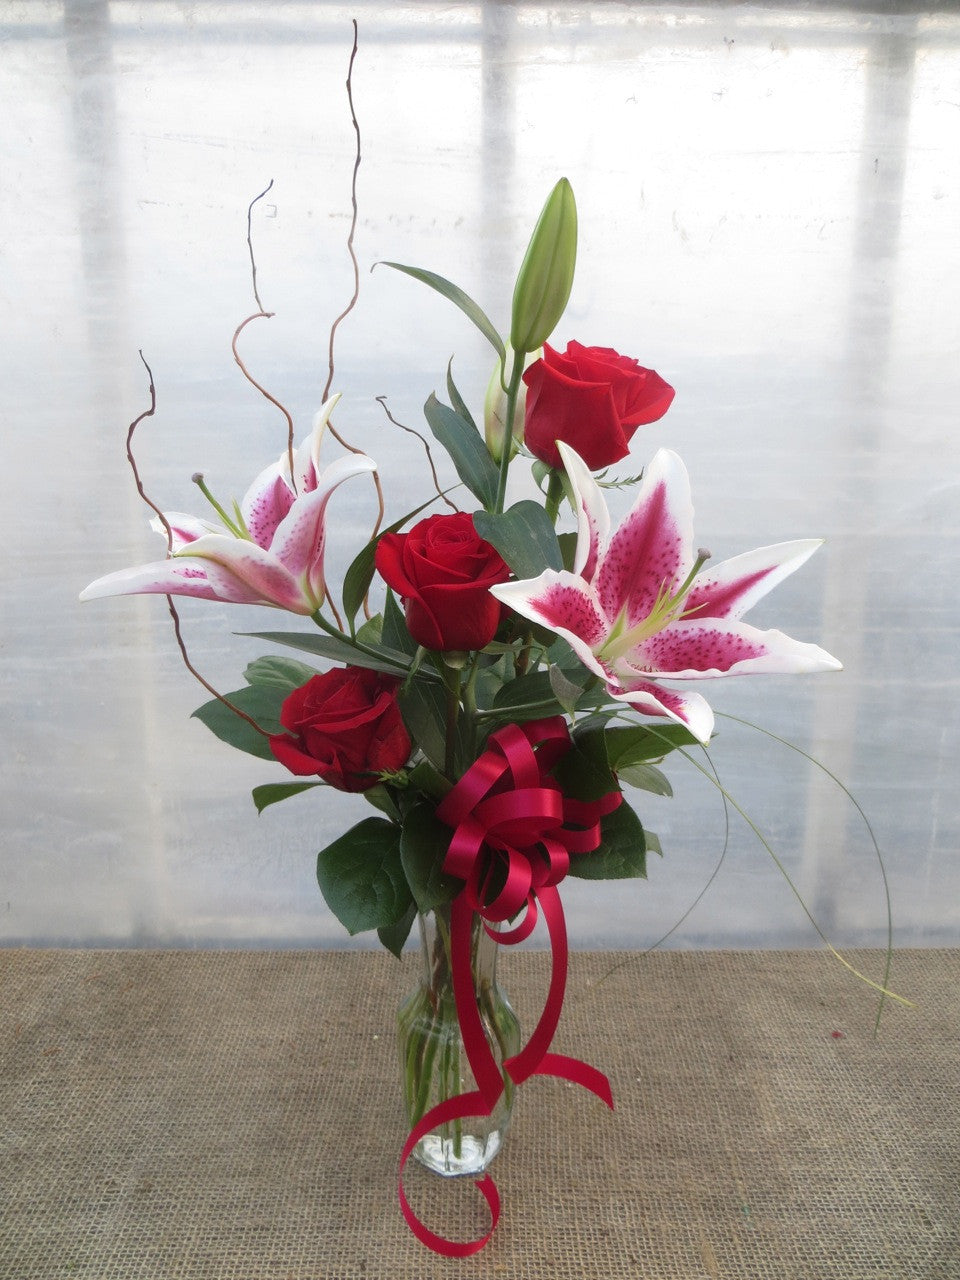 Radiant Beauty - Stargazer Lily with Red Roses - Designed by Michler's Florist in Lexington, KY